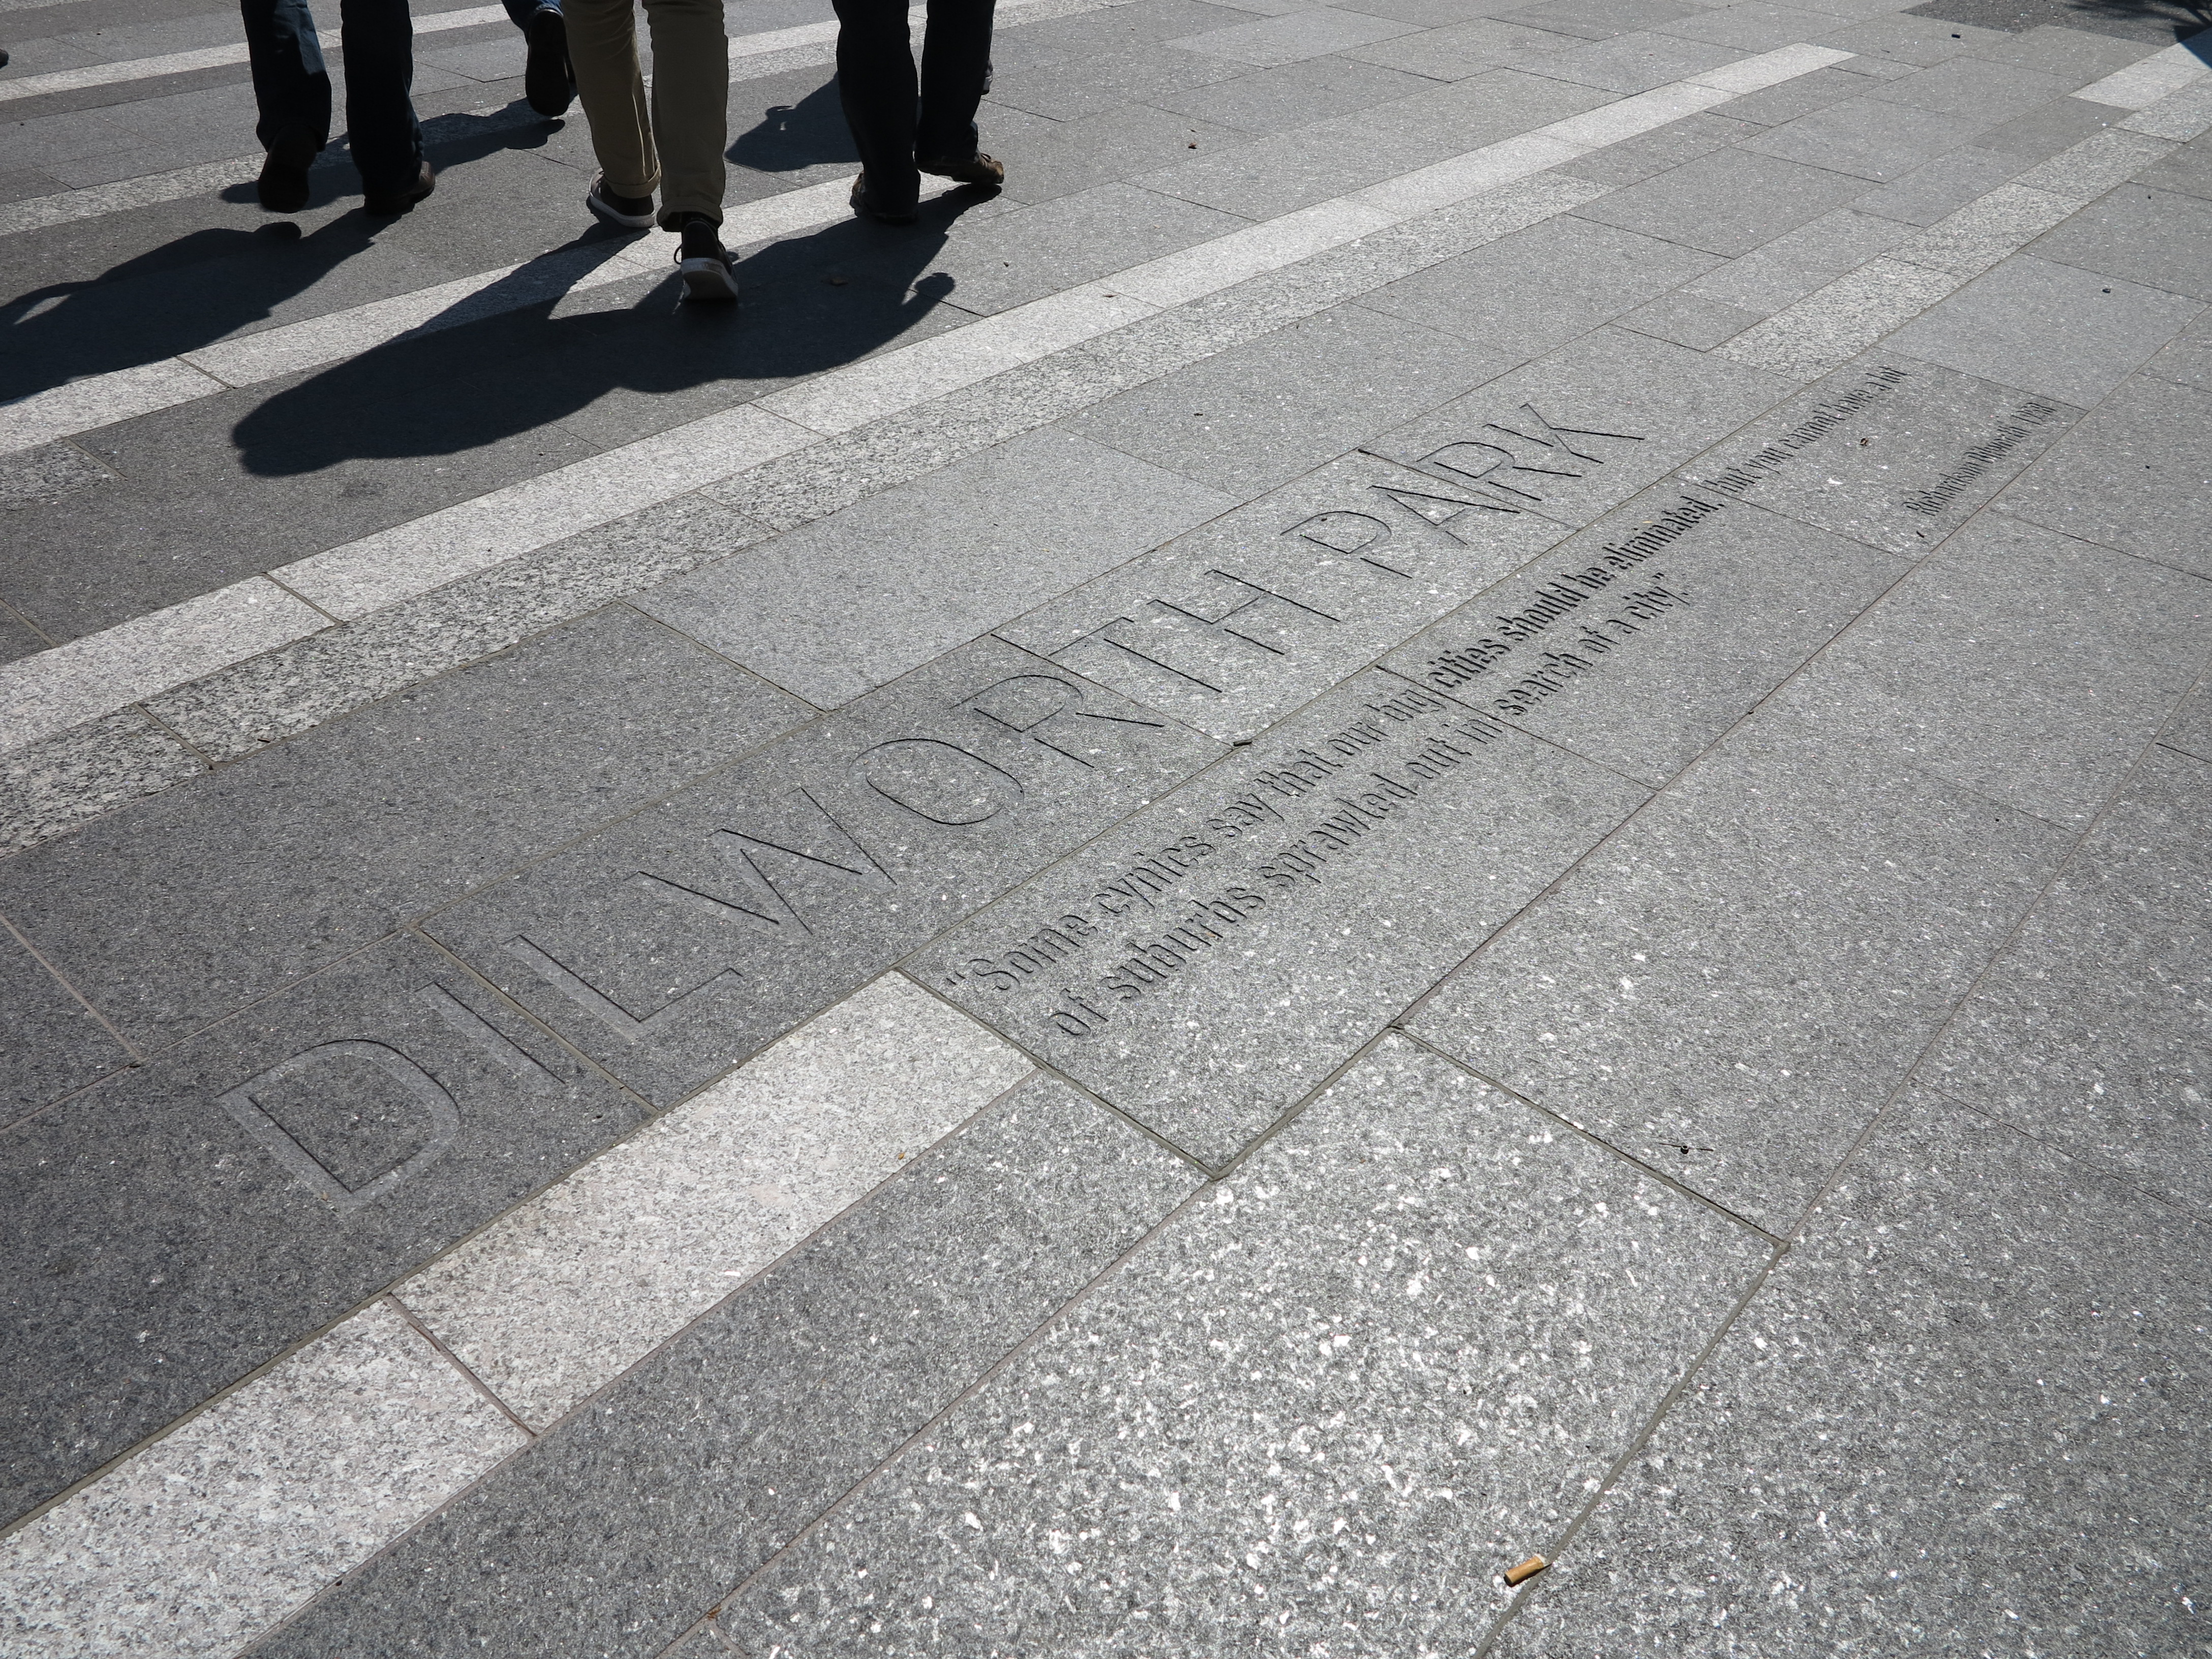 Dilworth Park, etched in stone